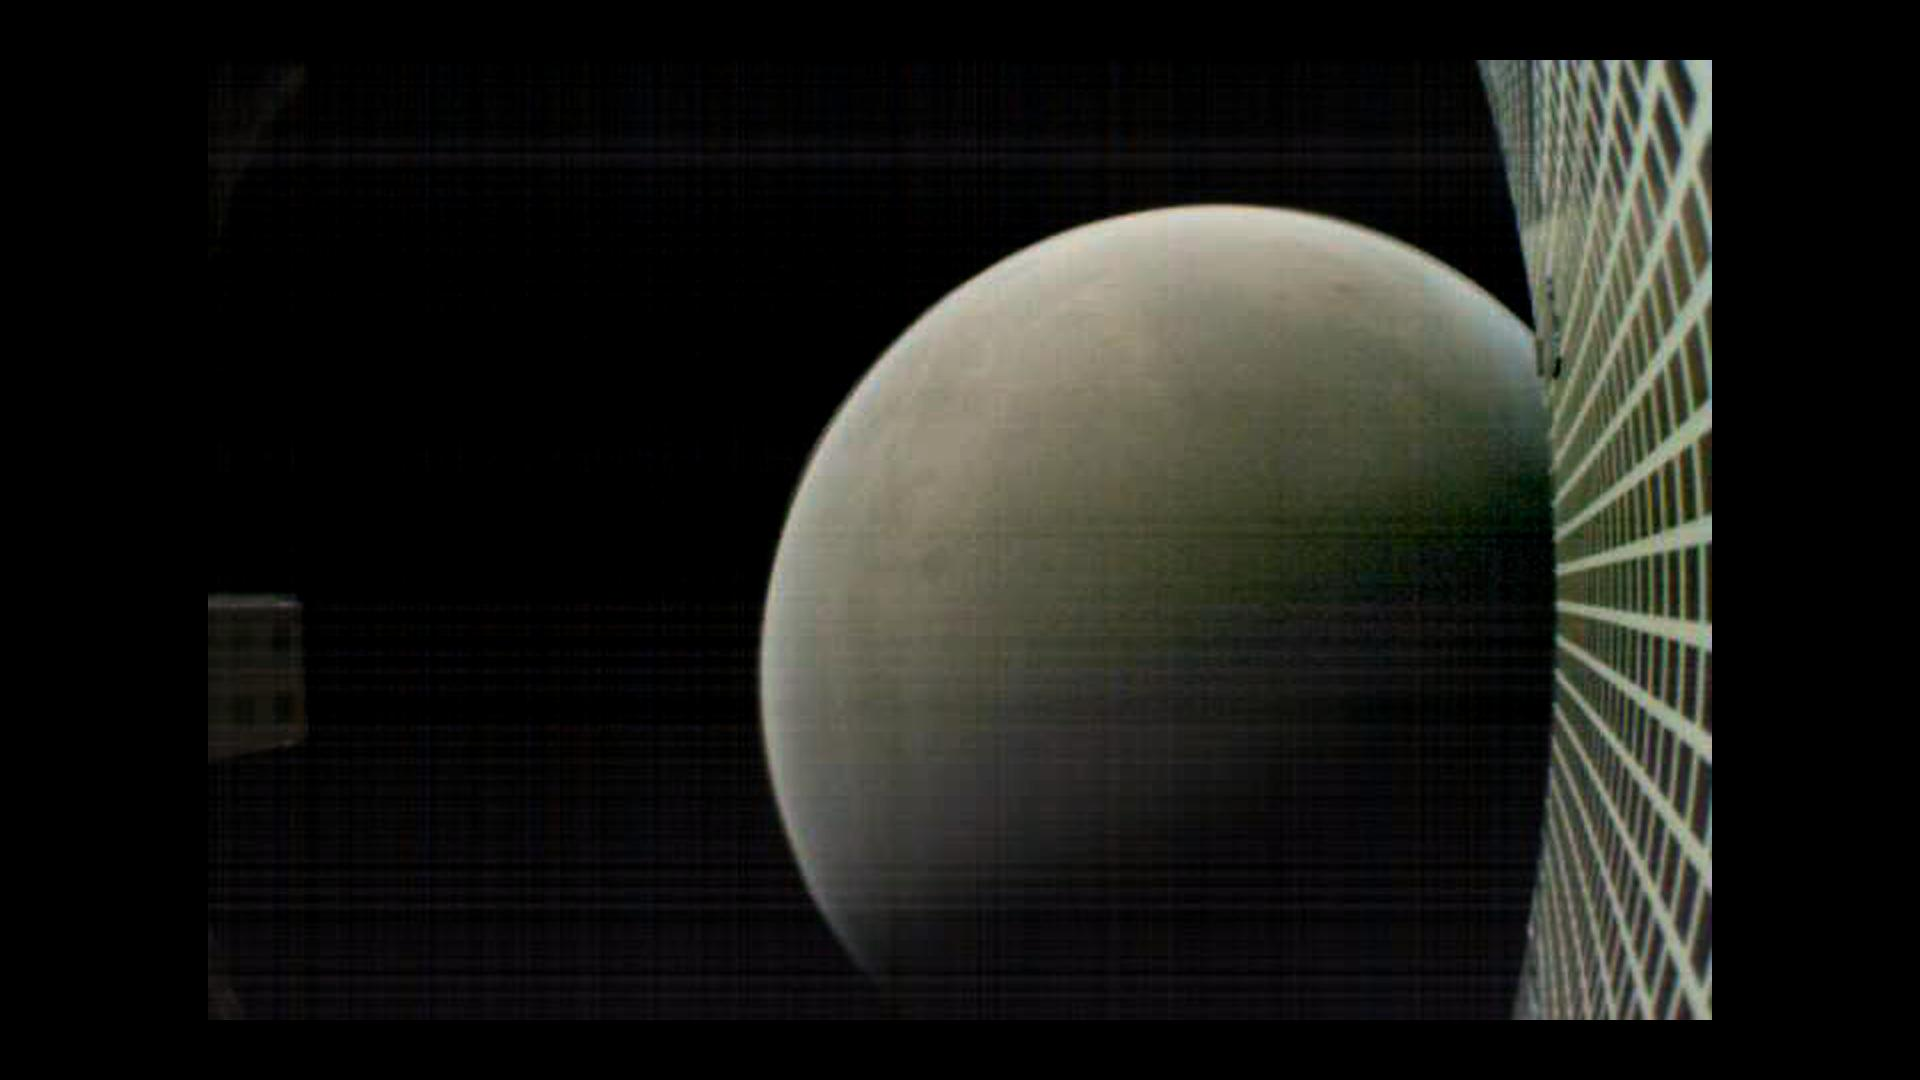 On Nov. 26, 2018, MarCO-B, one of NASAs Mars Cube One (MarCO) CubeSats, took this image of Mars from about 4,700 miles (6,000 kilometers) away during its flyby of the Red Planet.